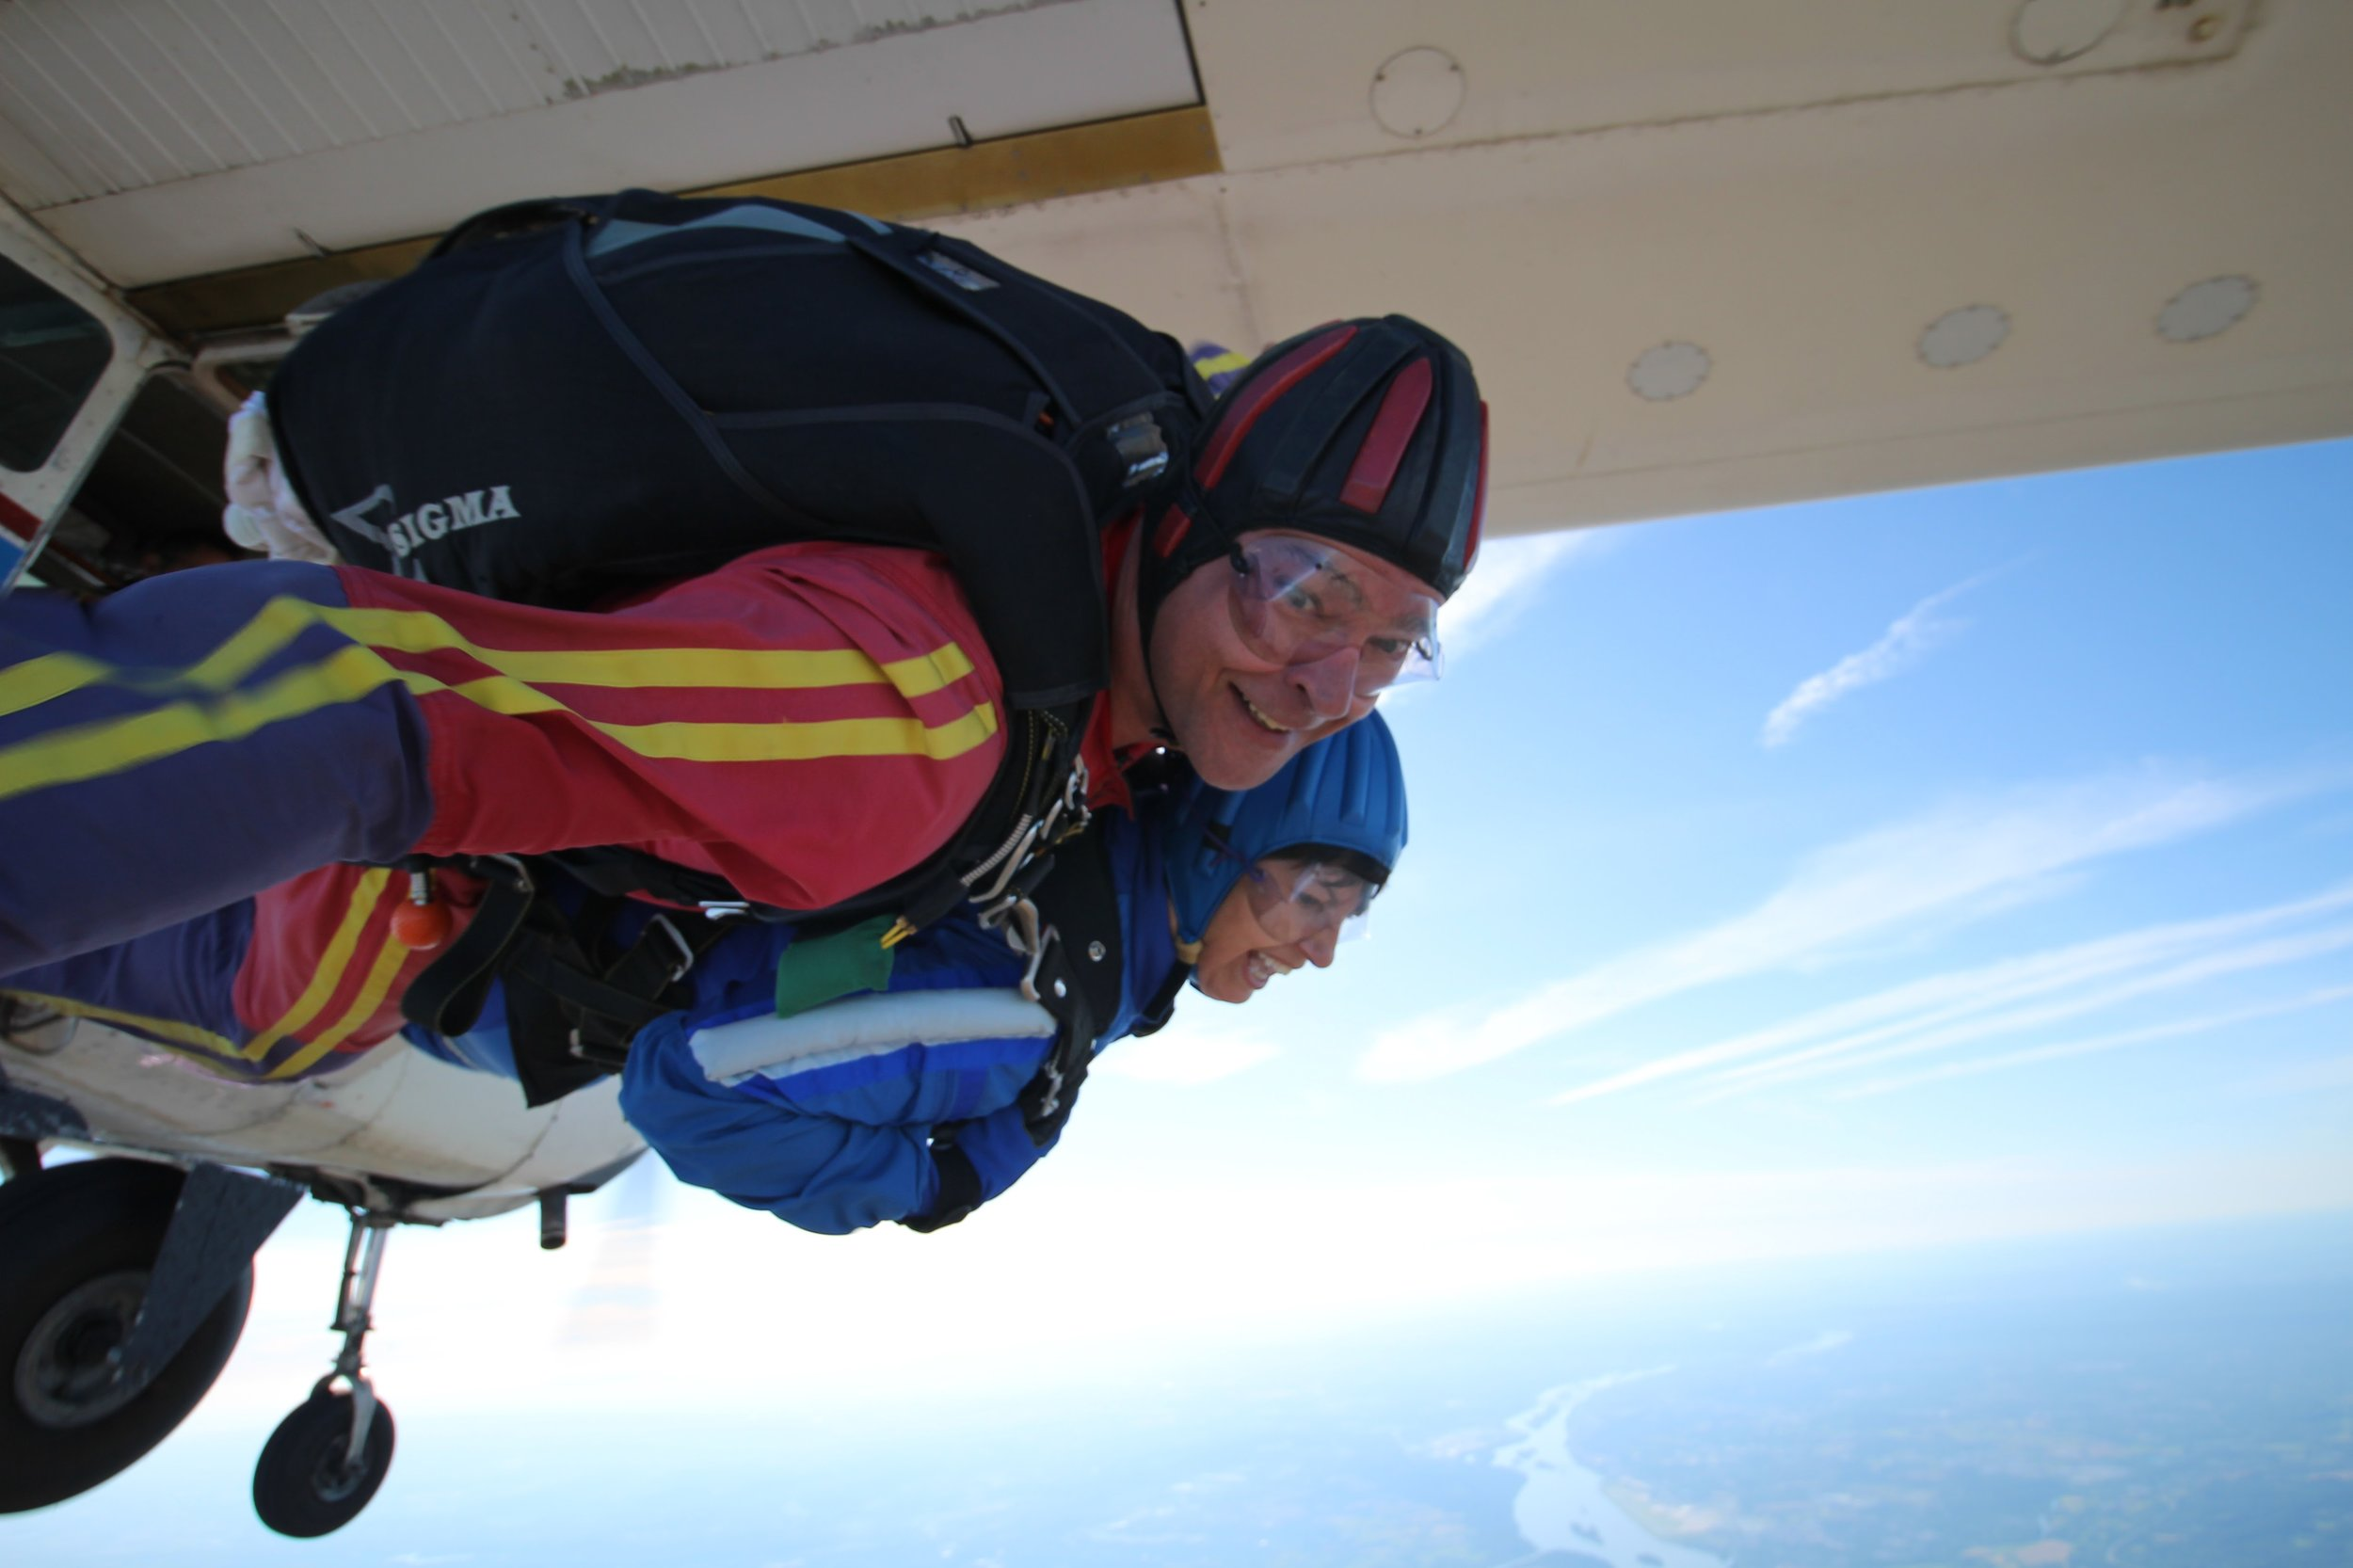 Tandem Skydiving - See central Pennslvania in an entirely new way.